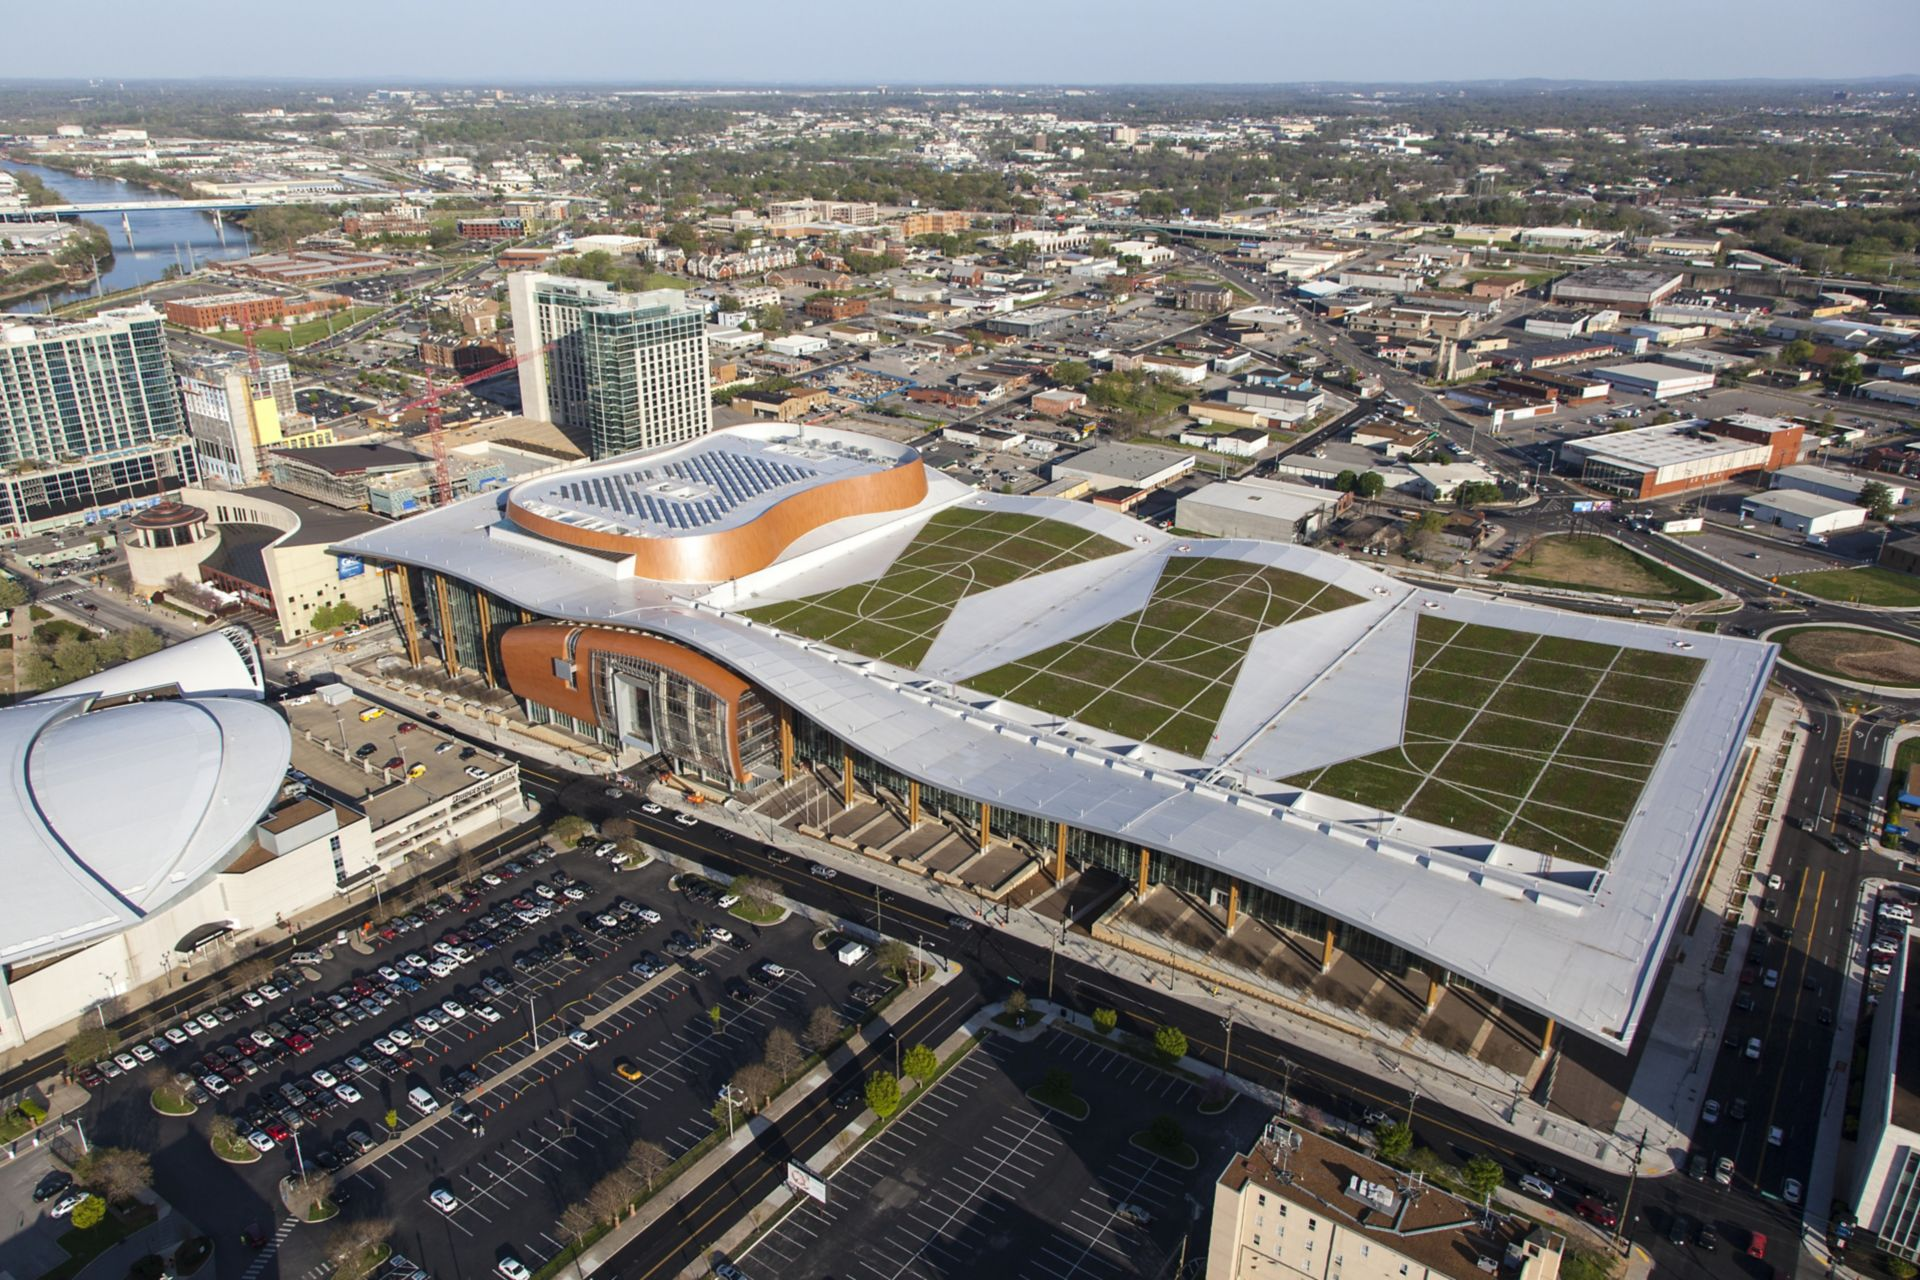 Green roof with single-ply membrane installed on Music City Center in Nashville in USA